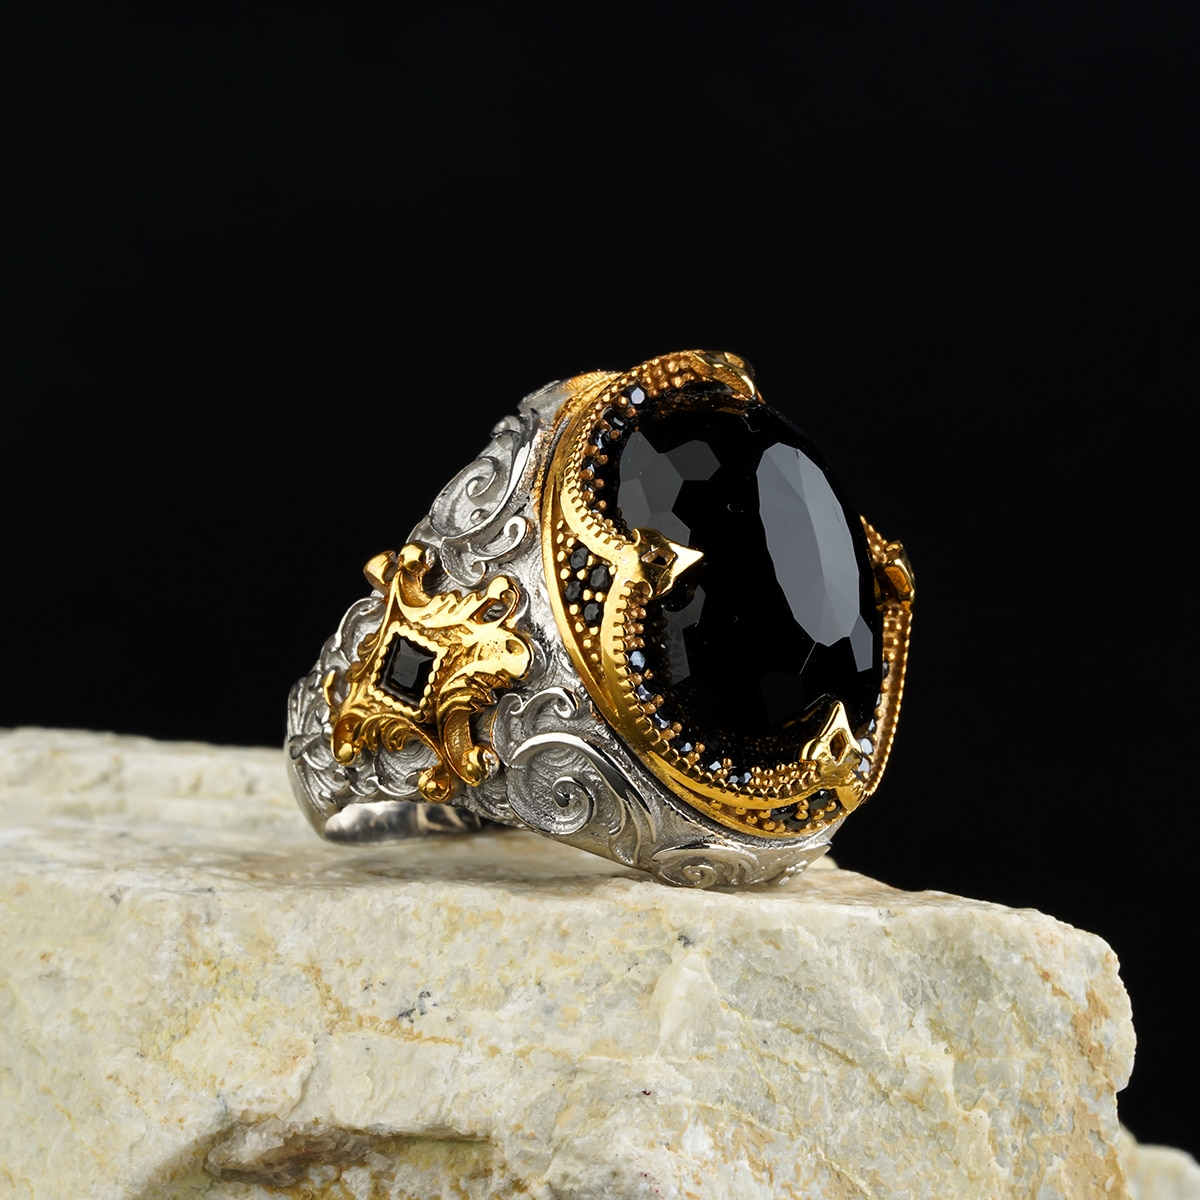 custom Jewelry Guaranteed High-quality 925 Sterling Silver zircon stone ring  design  in a luxurious way for men with gift